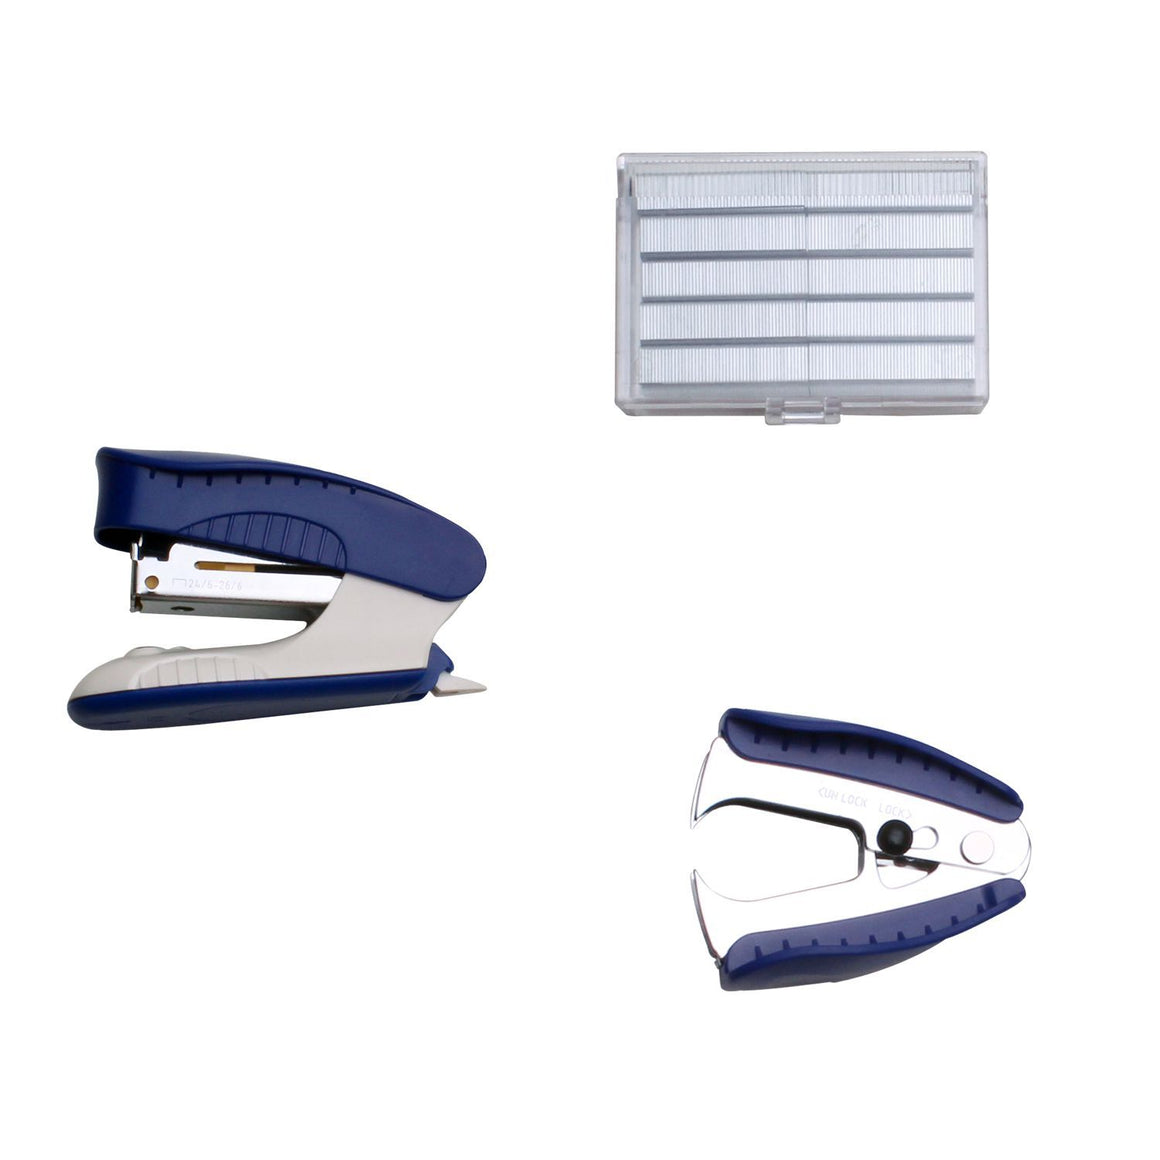 Mini Grip Stapler Kit